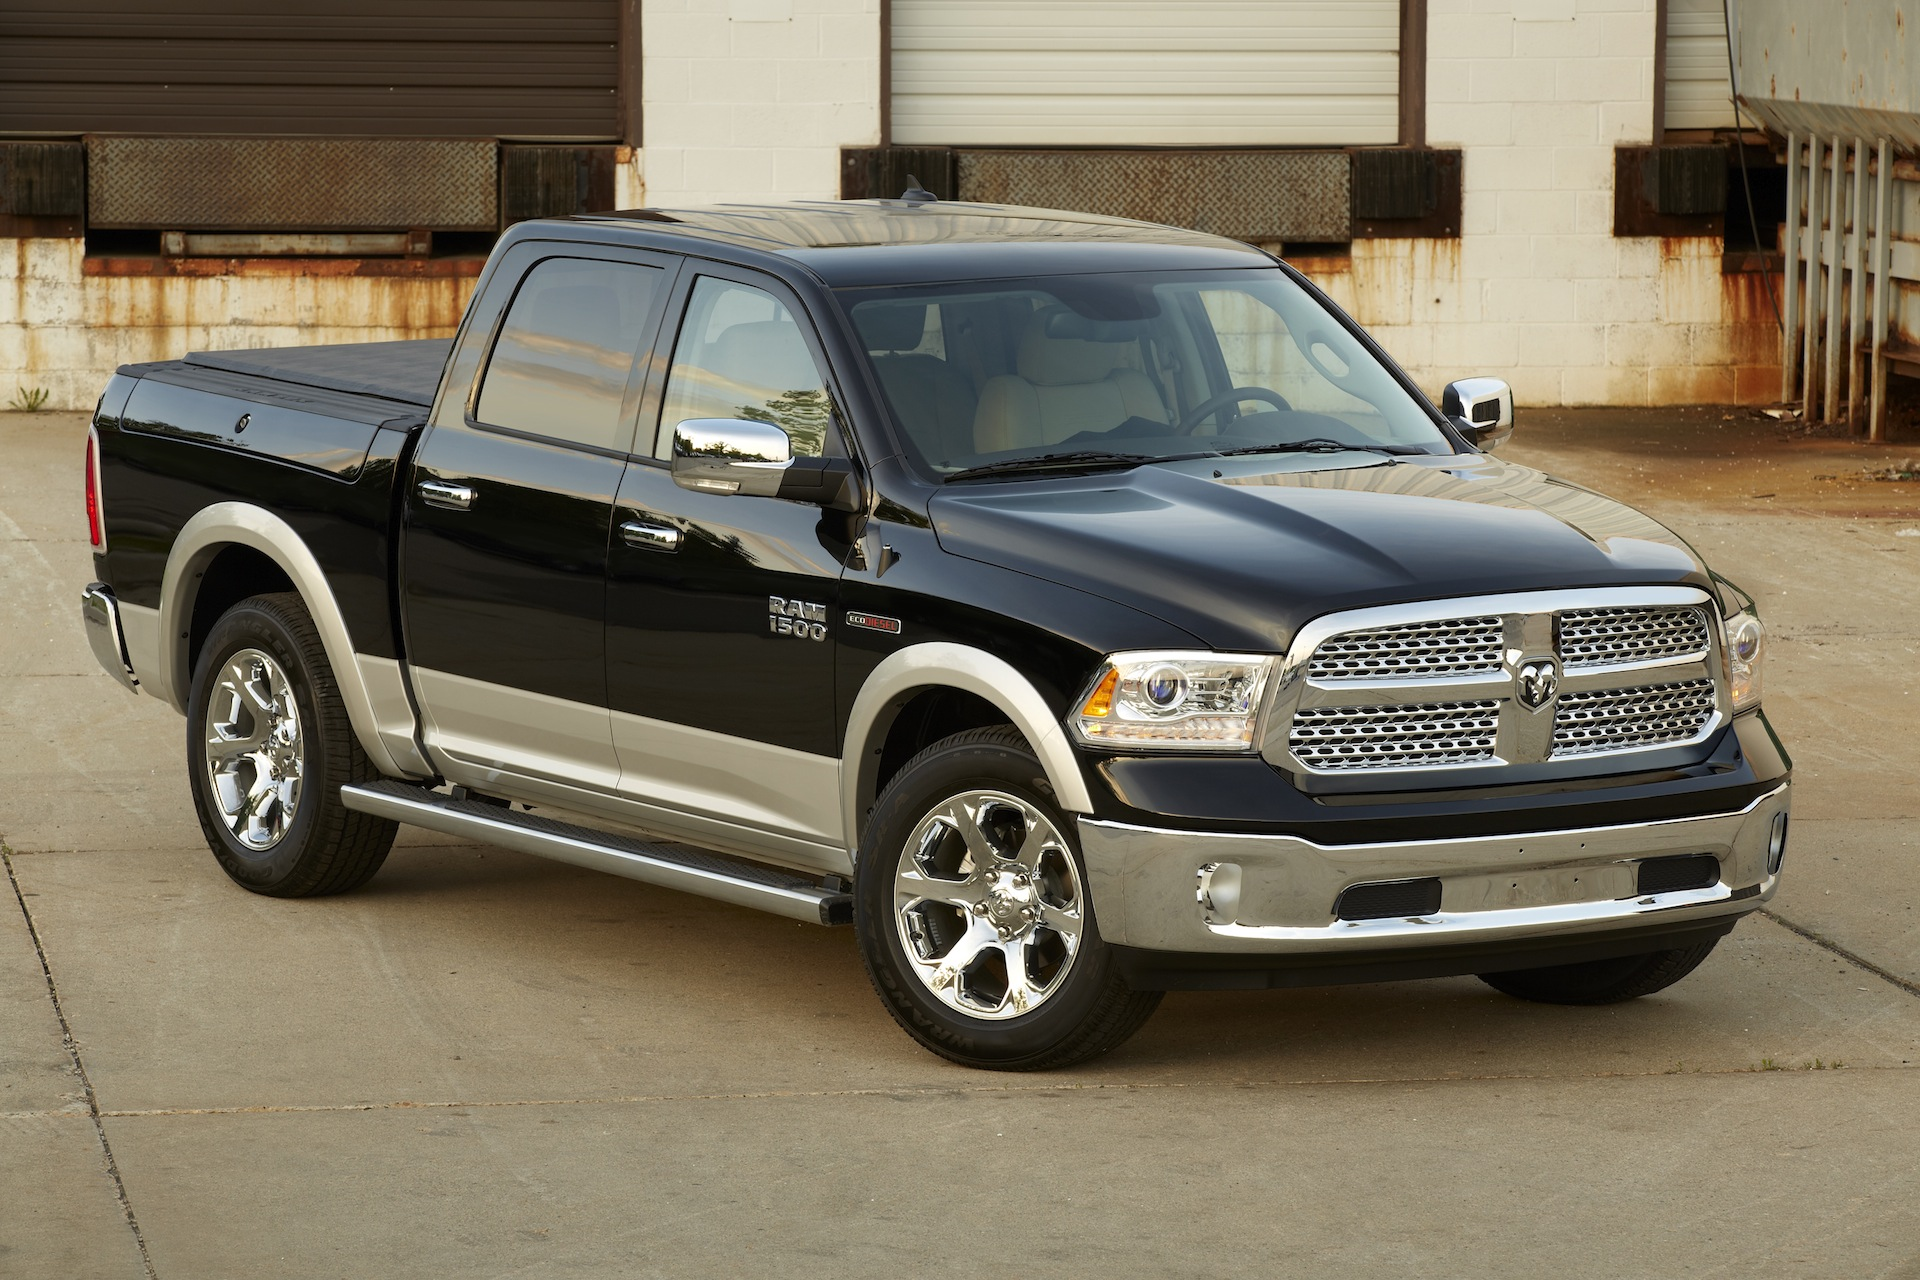 2014 ram 1500 ecodiesel uses 39 maserati 39 engine trivia today. Black Bedroom Furniture Sets. Home Design Ideas